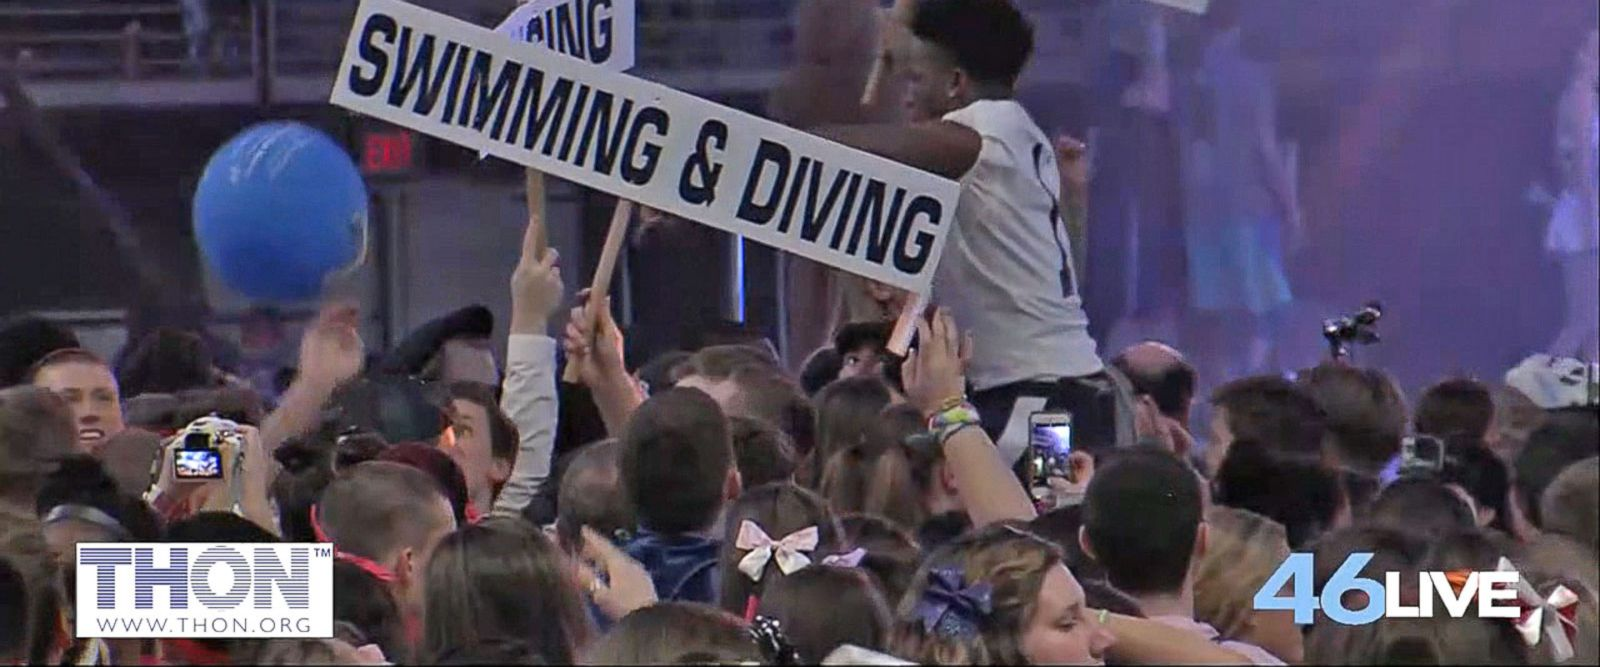 VIDEO: Penn State students participate in dance marathon